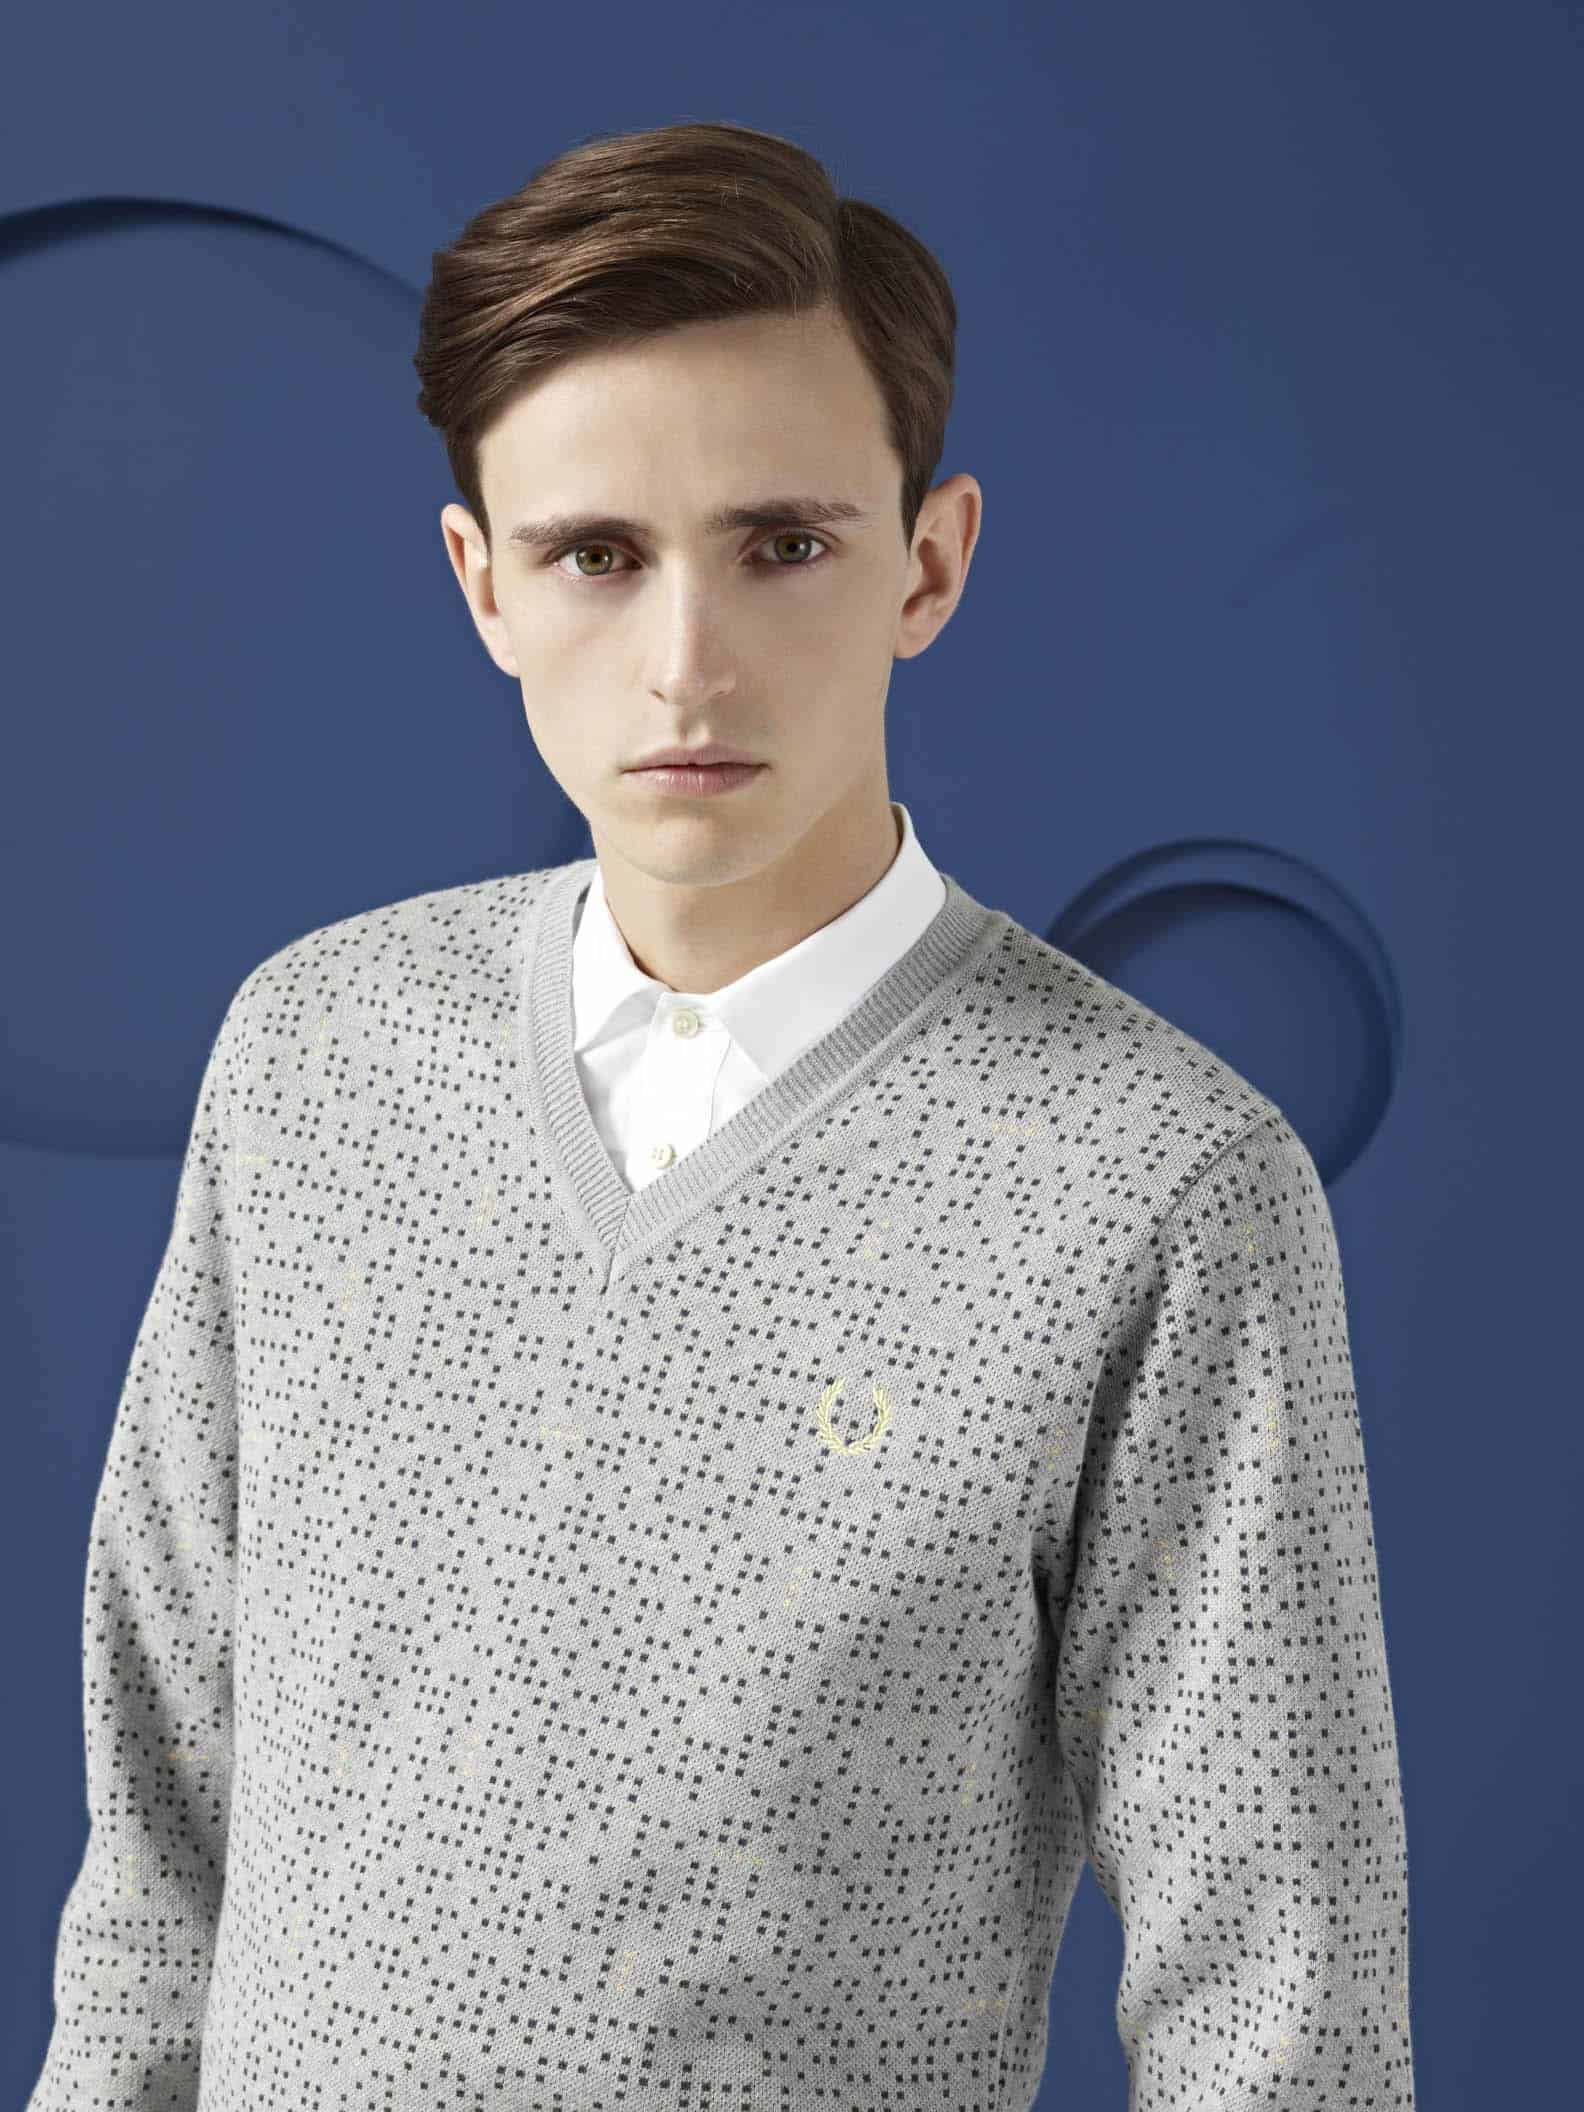 Fred Perry Laurel Wreath Menswear: The Spring /Summer 2013 Collection